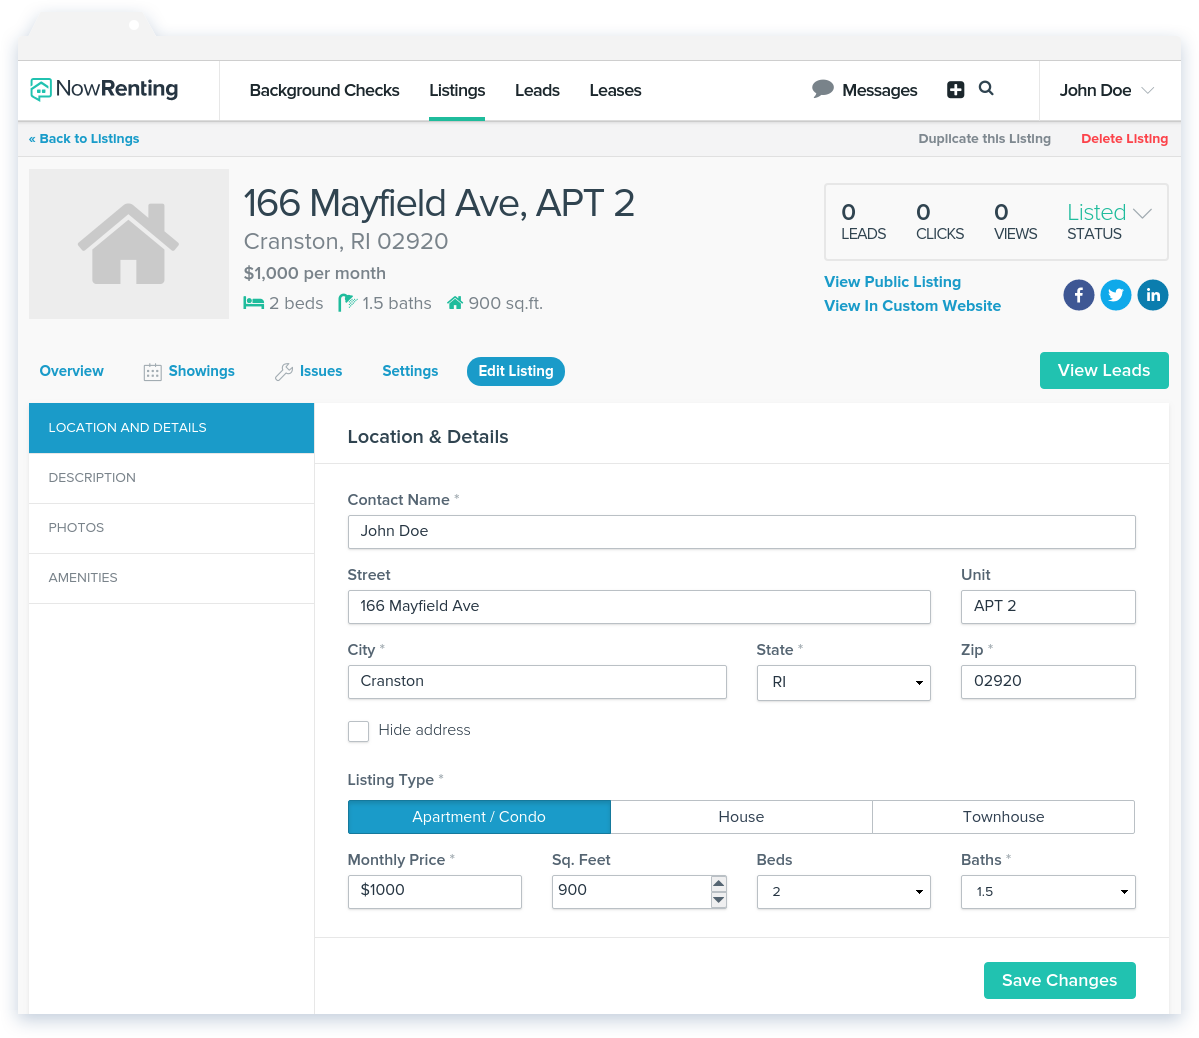 NowRenting: How to Edit a Listing